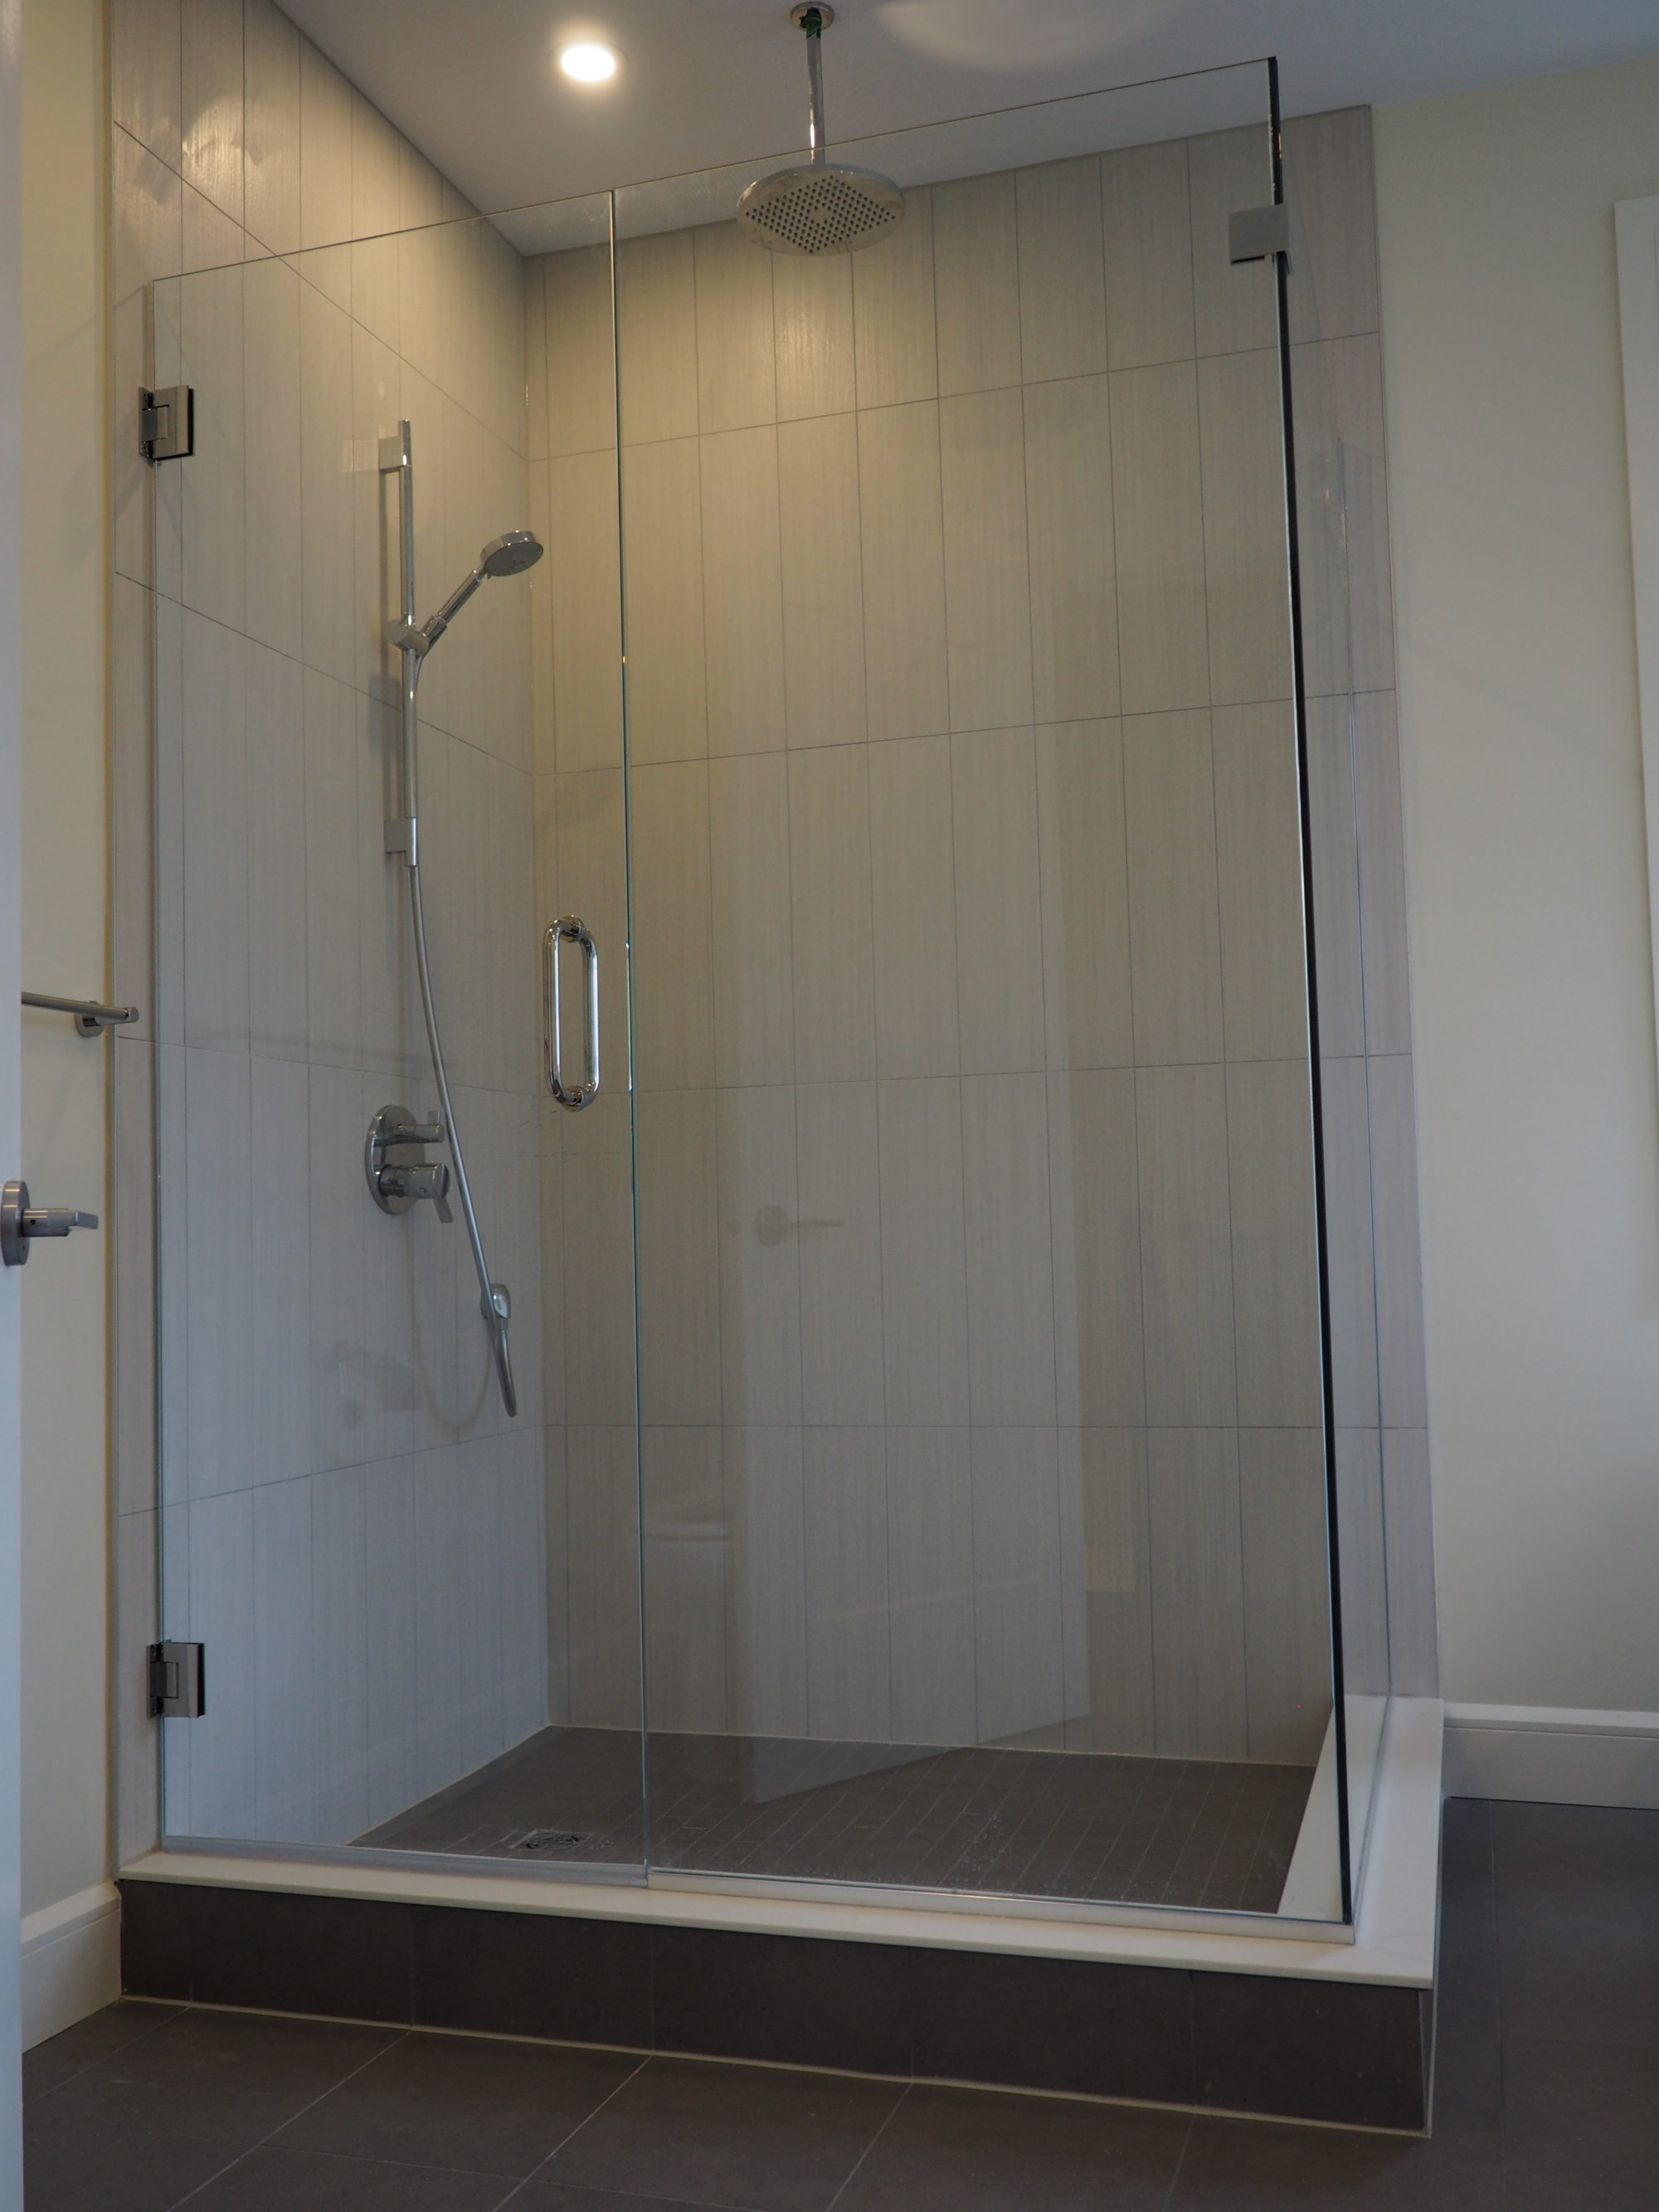 Custom Tile and Seamless Glass Shower Enclosure